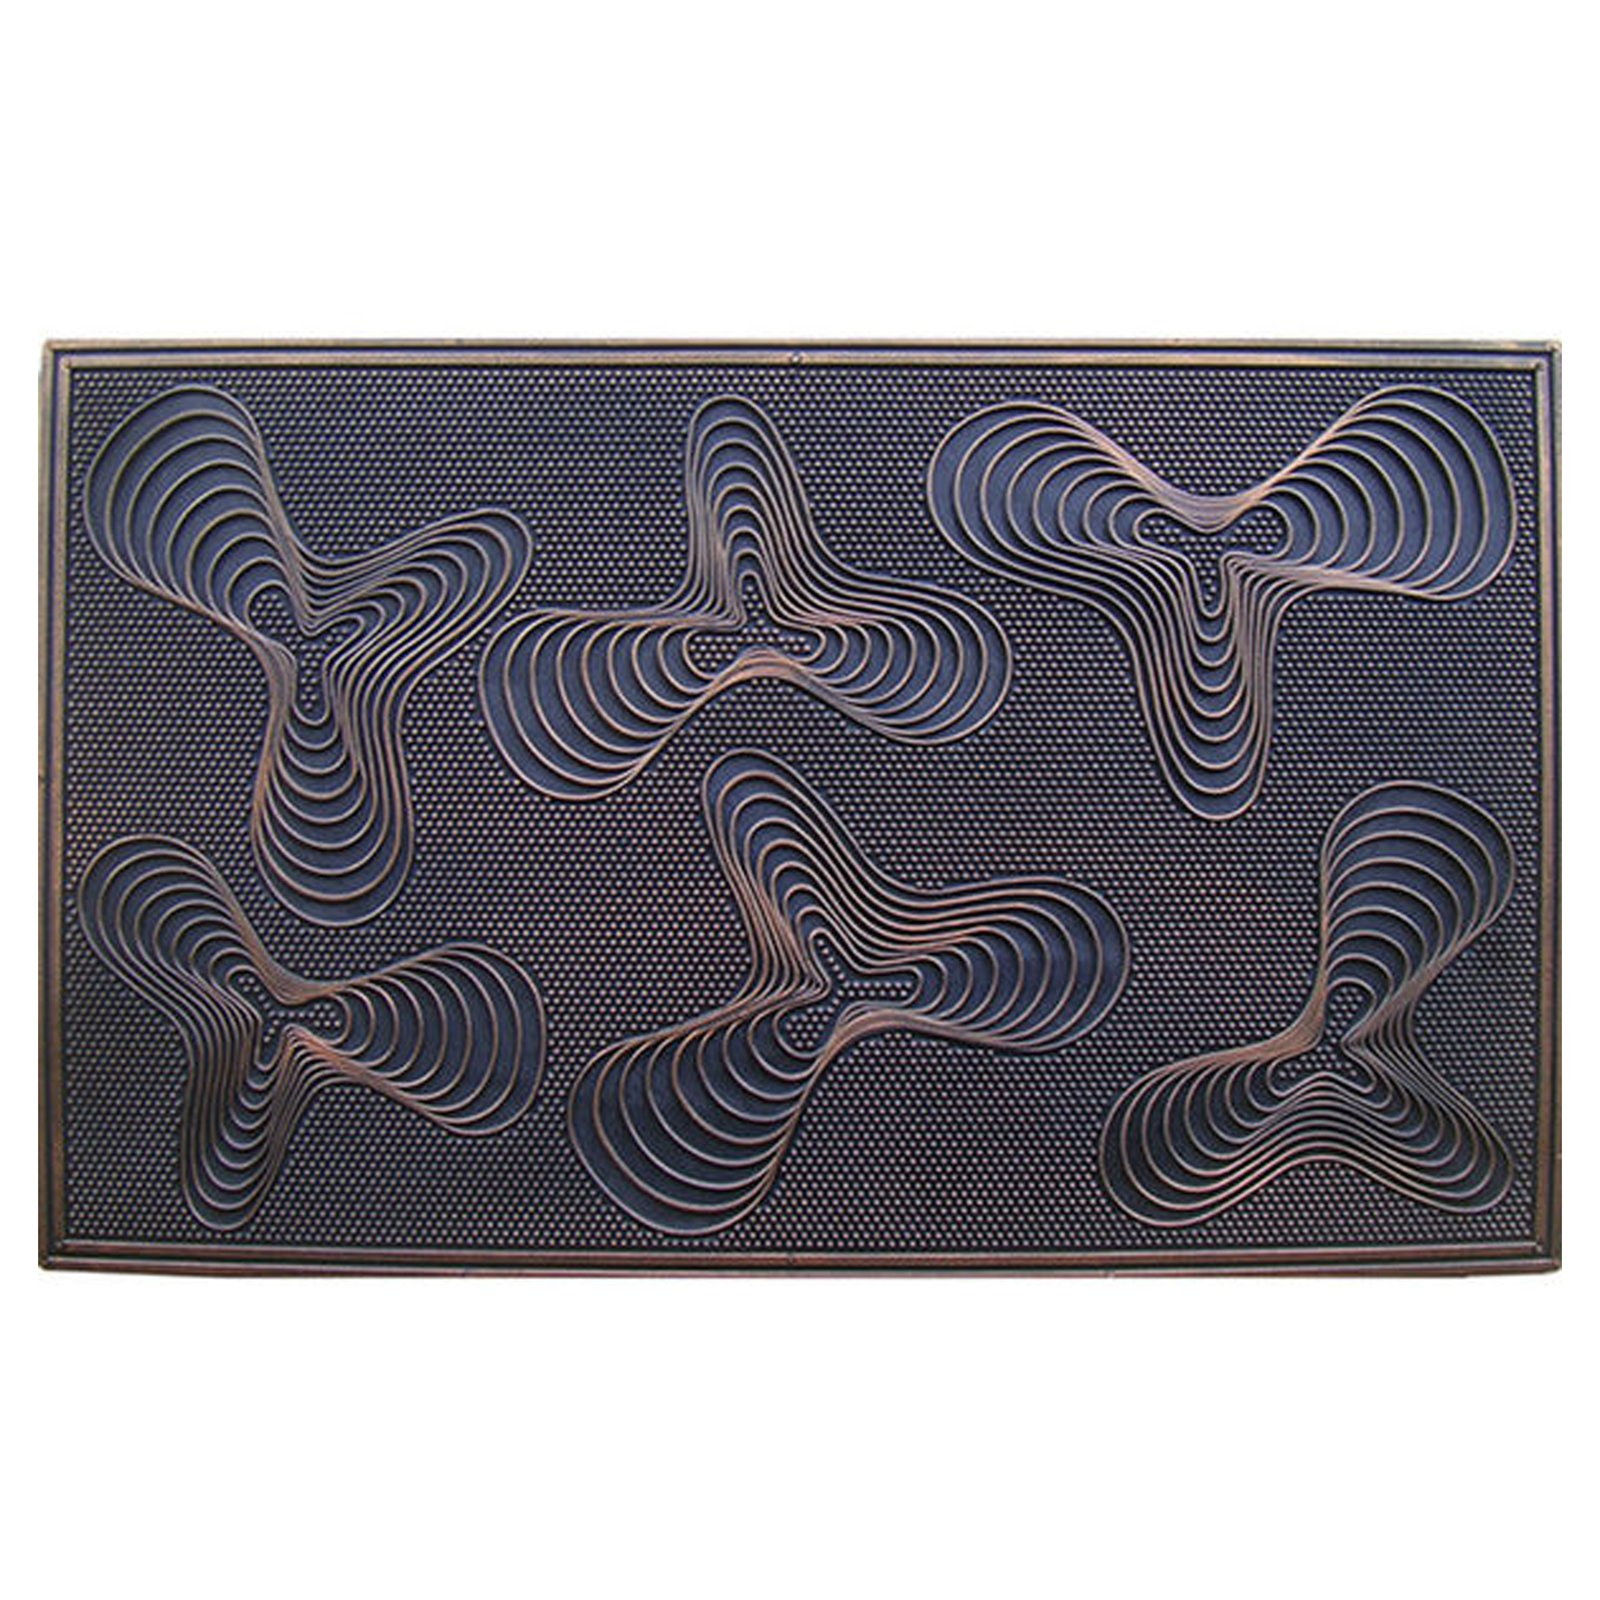 First Impression Rubber Grill Pin Door Mat